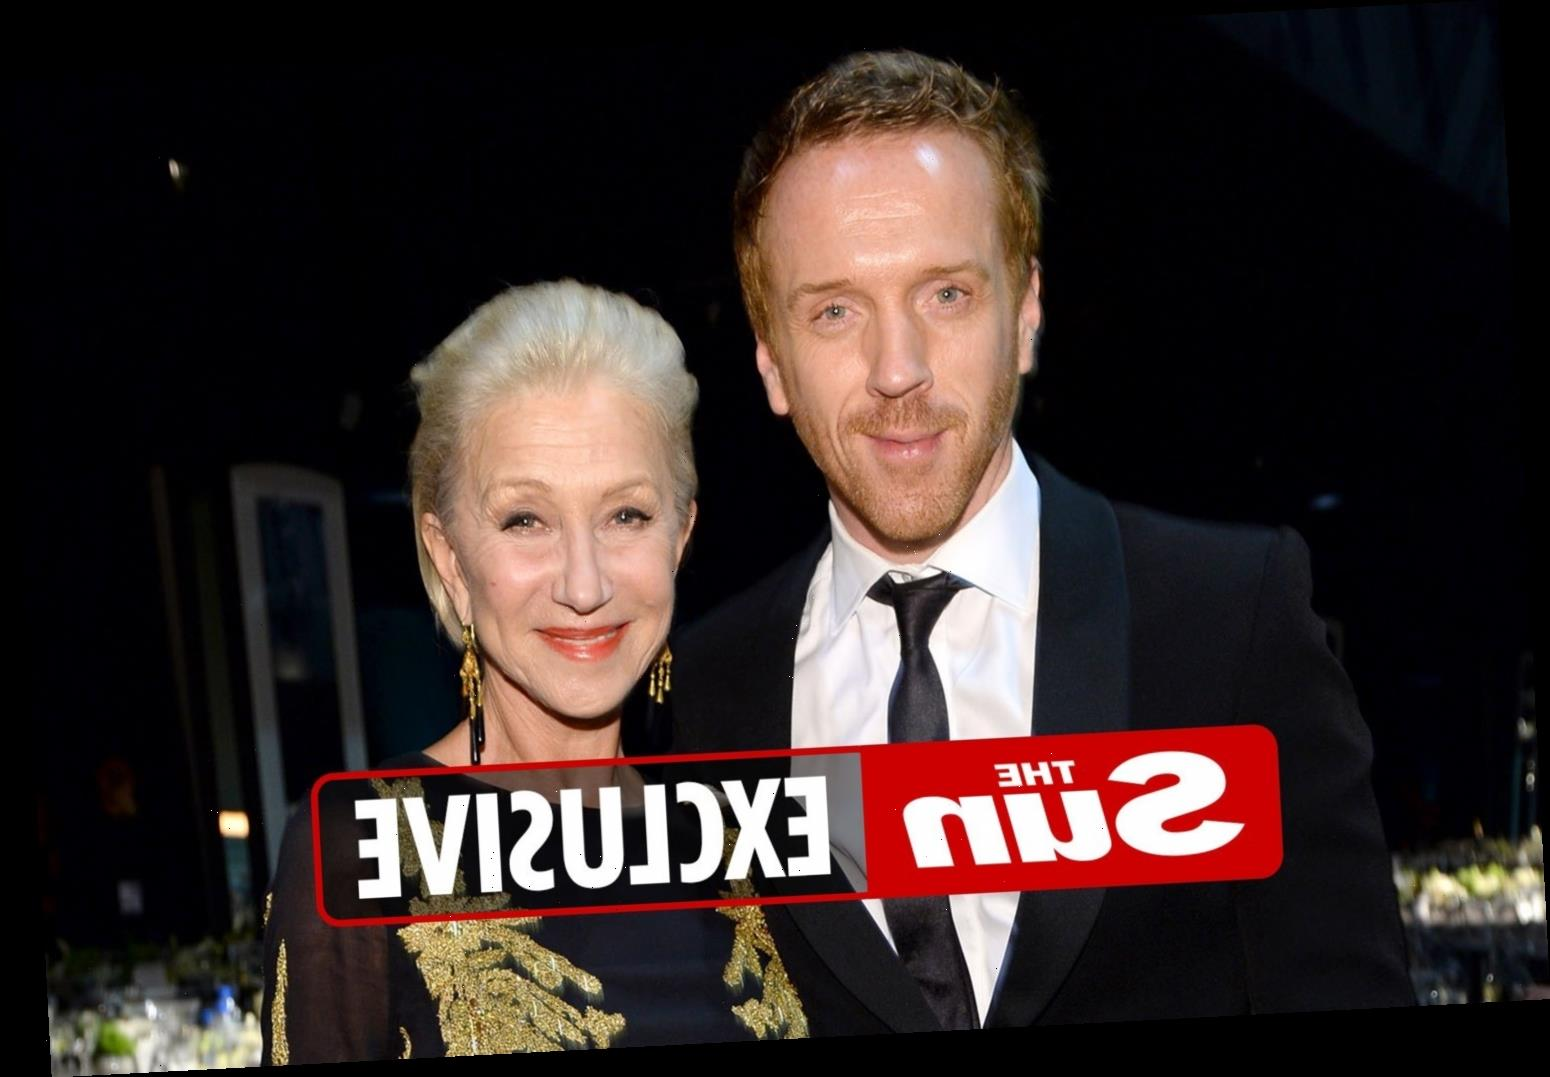 Unlikely duo Dame Helen Mirren and Damien Lewis team up to record album for Queen's 95th birthday